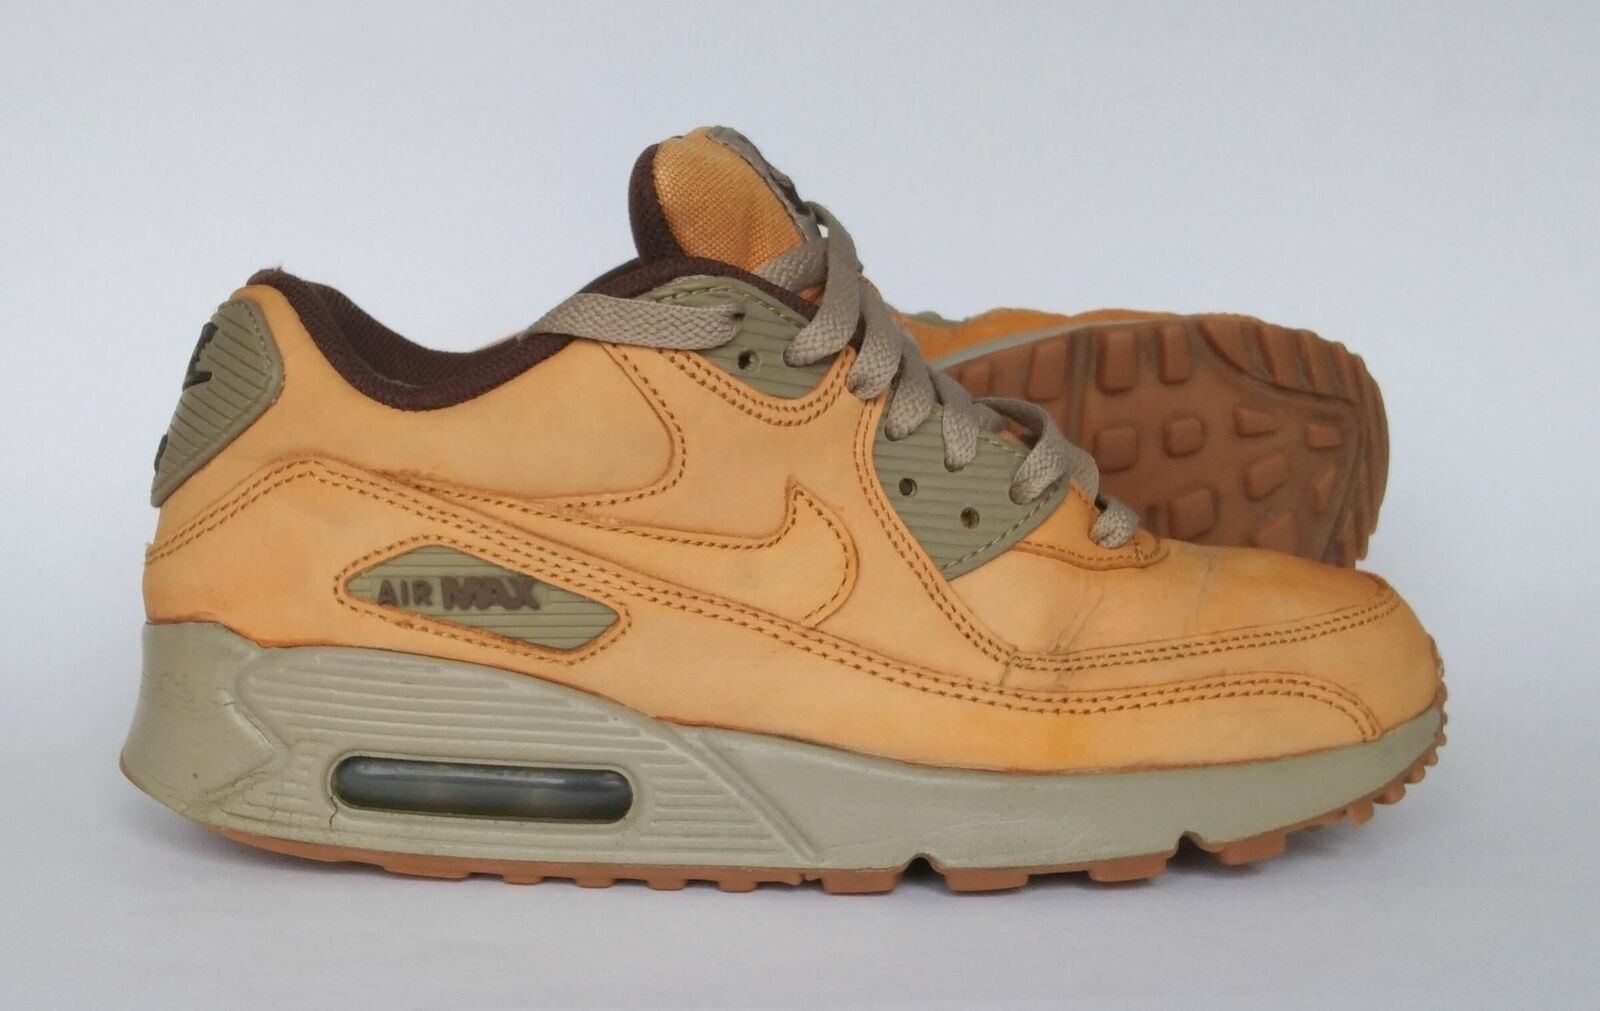 Details about Womens Nike Air Max 90 Leather Winter Trainers 880302 700 Beige UK5US7.5